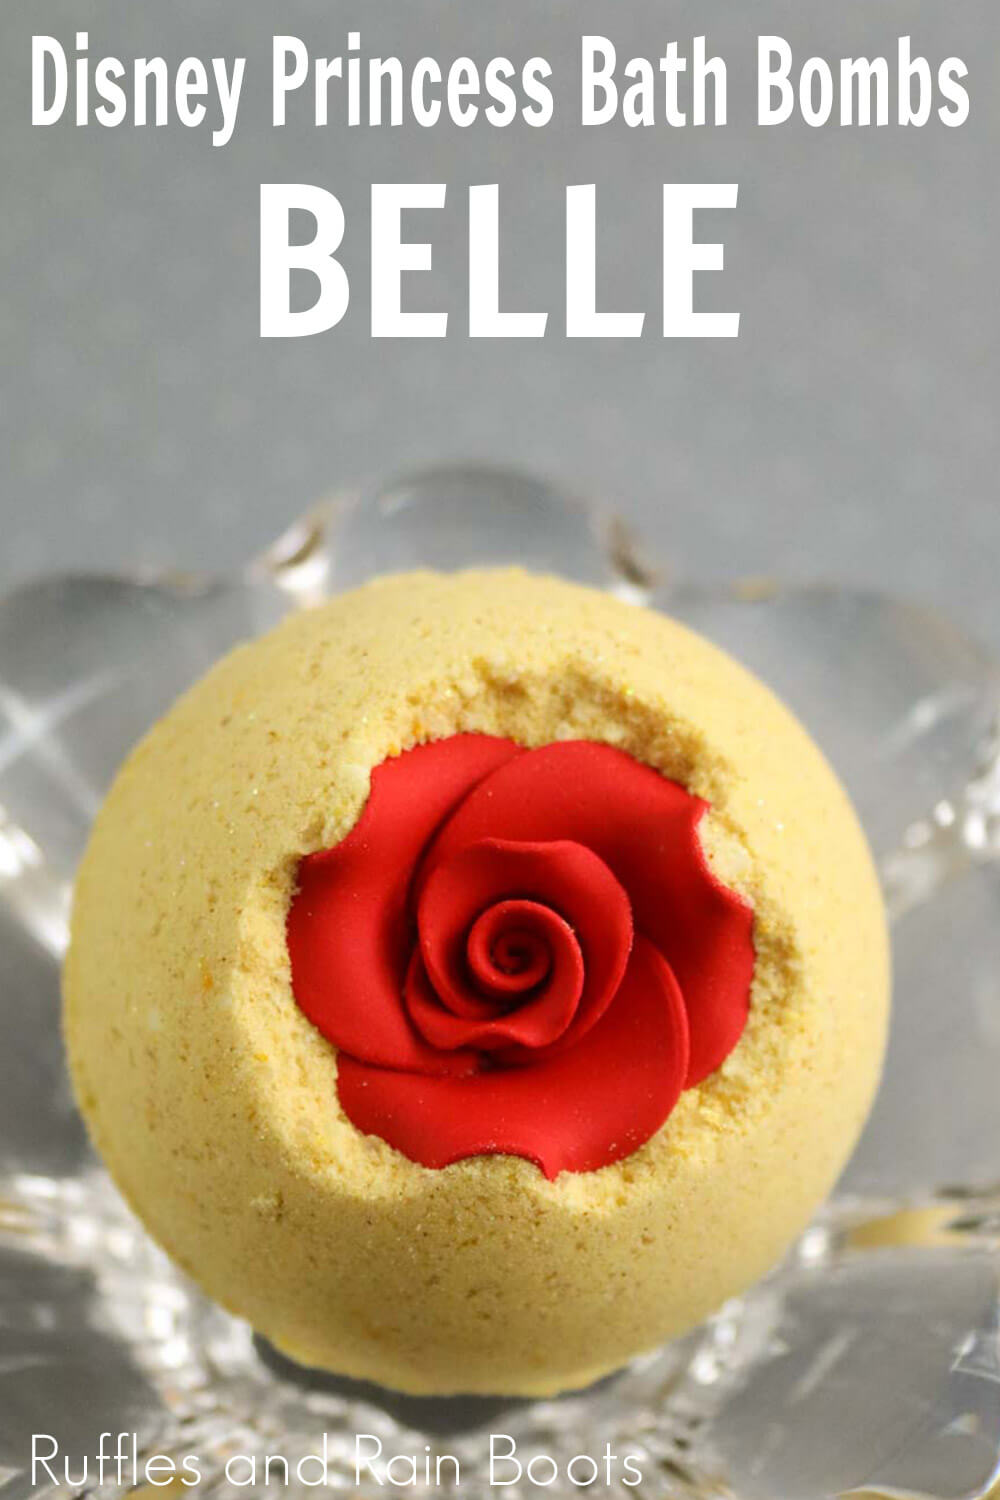 disney belle bath bombs on a silver background with text which reads disney princess bath bombs: belle